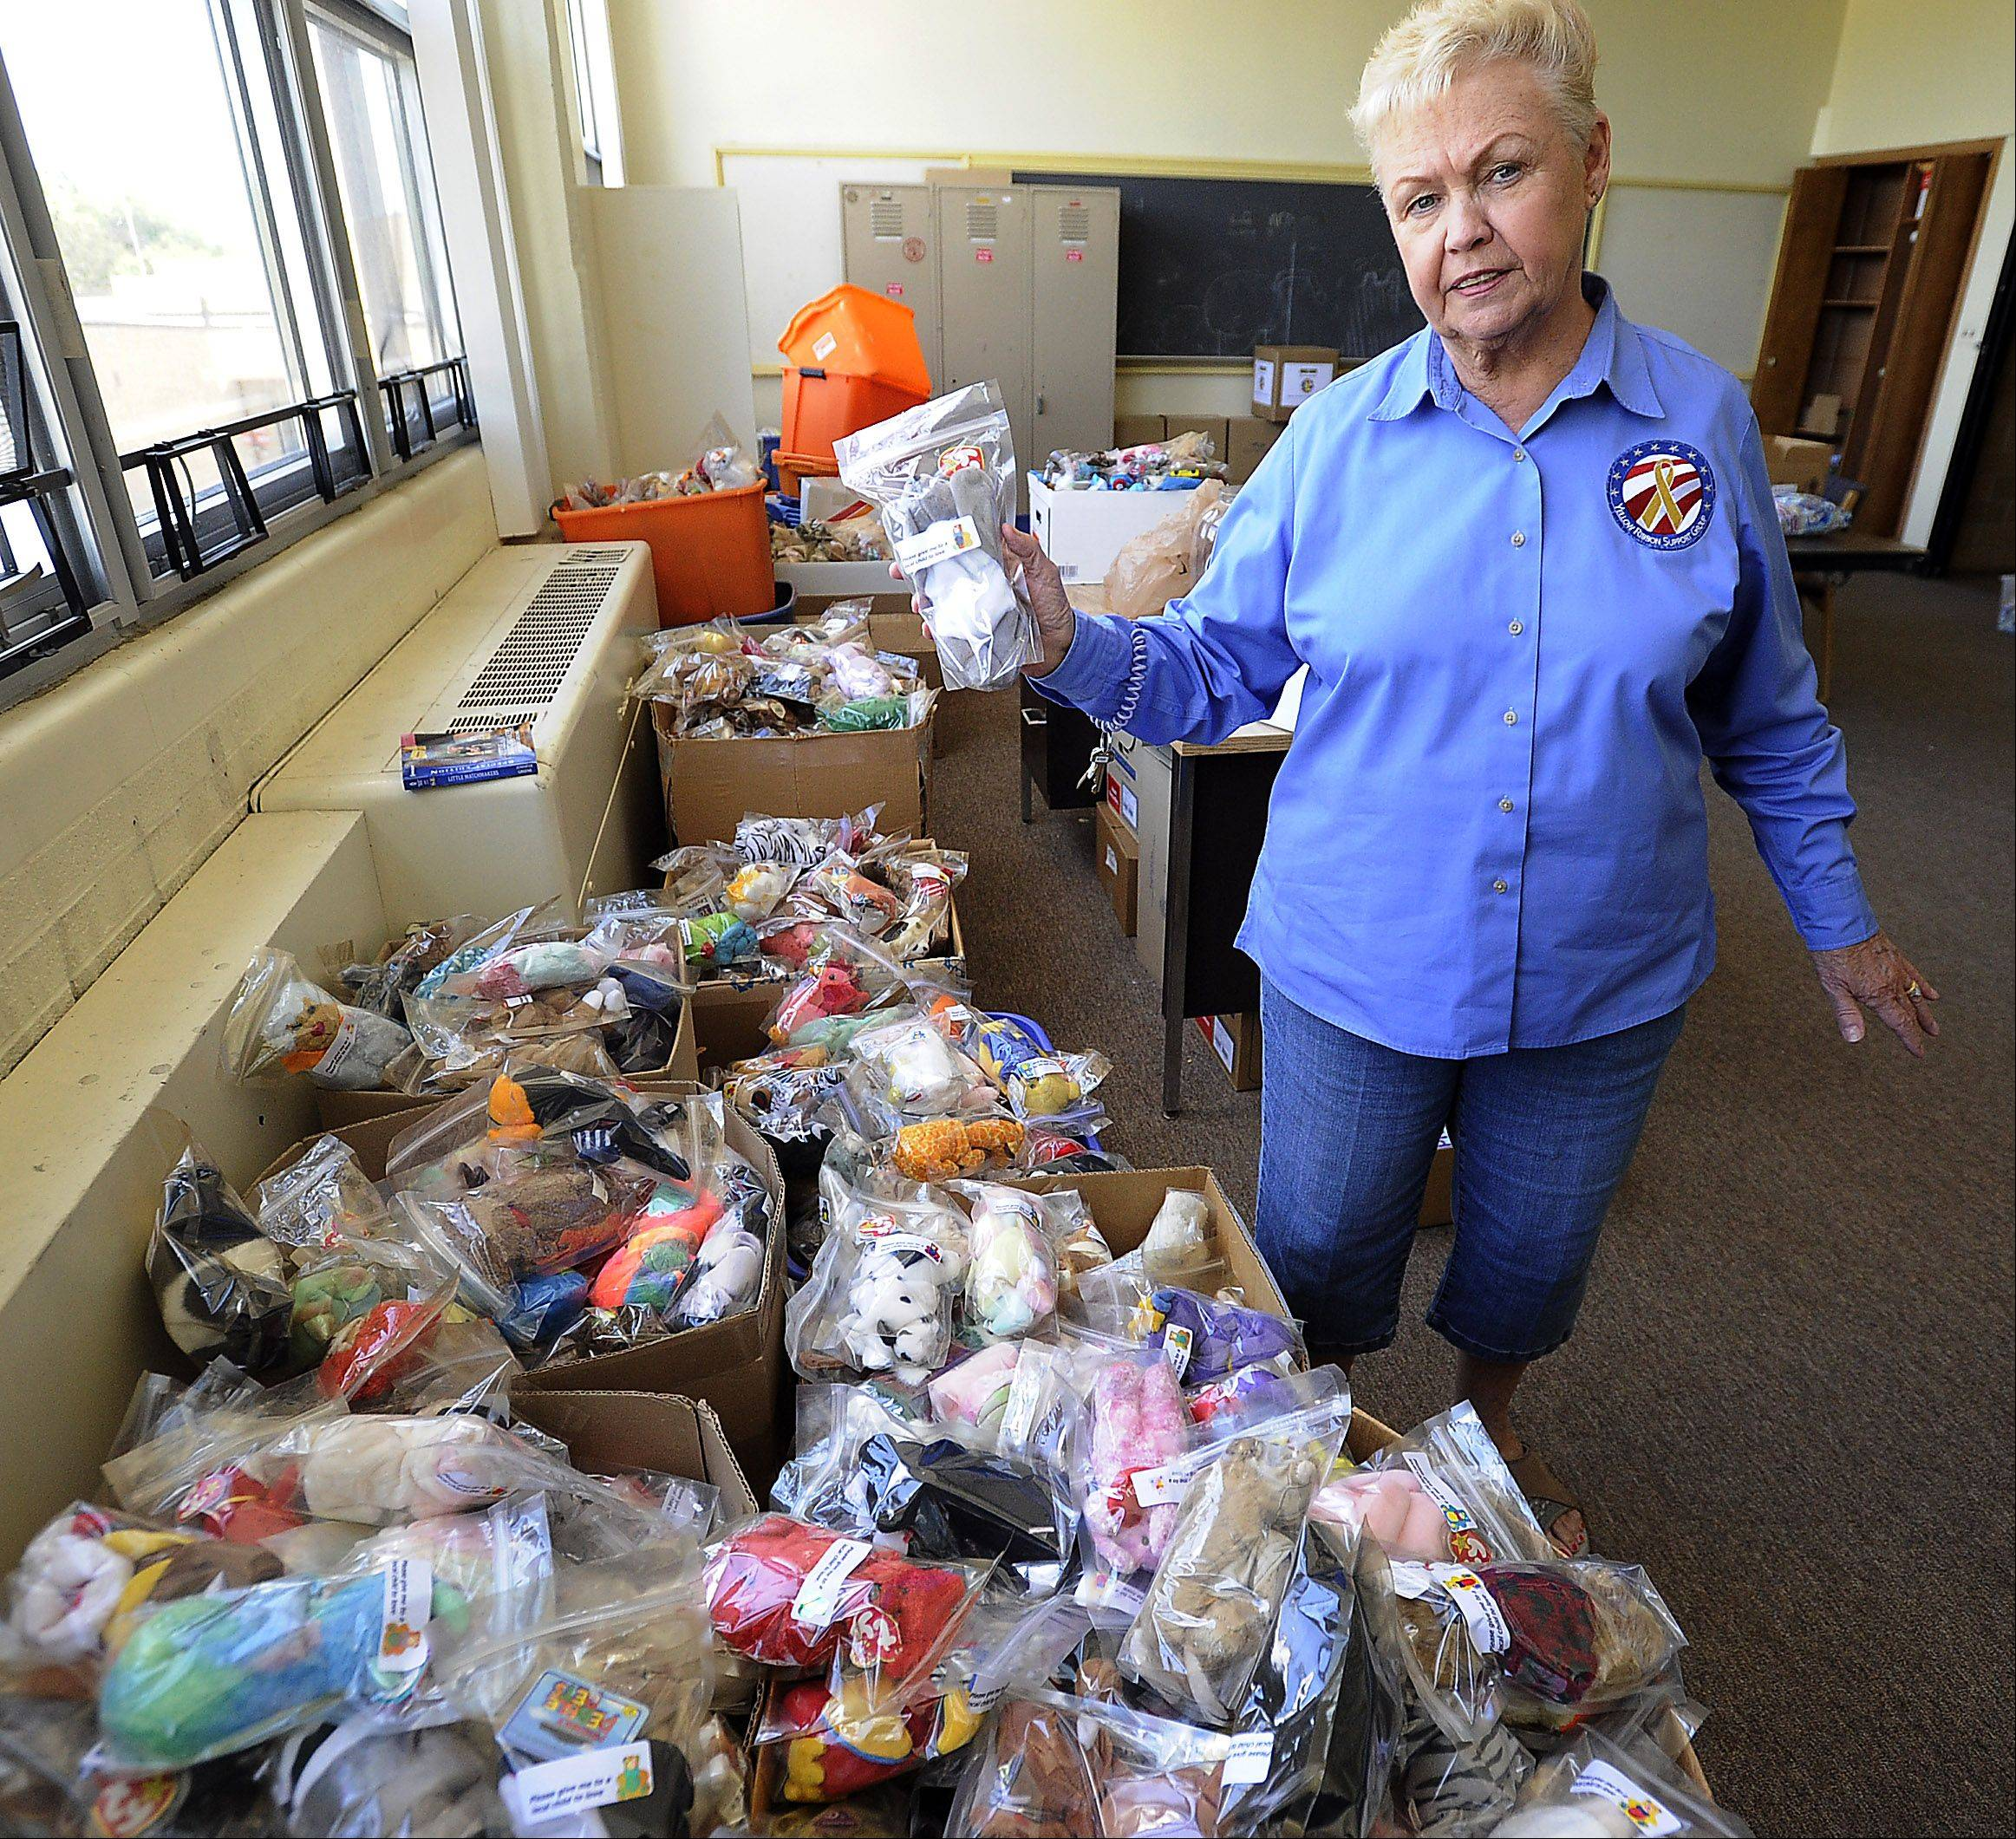 Pat McCoy, of Palatine, and her husband Mac, have been running the Yellow Ribbon Support Group for over 10 years, and are now shutting down the organization because of lack of funds and support from major sponsors. Pat sorts through the hundreds of Beenie Babies to be given to the children of Afghanistan.